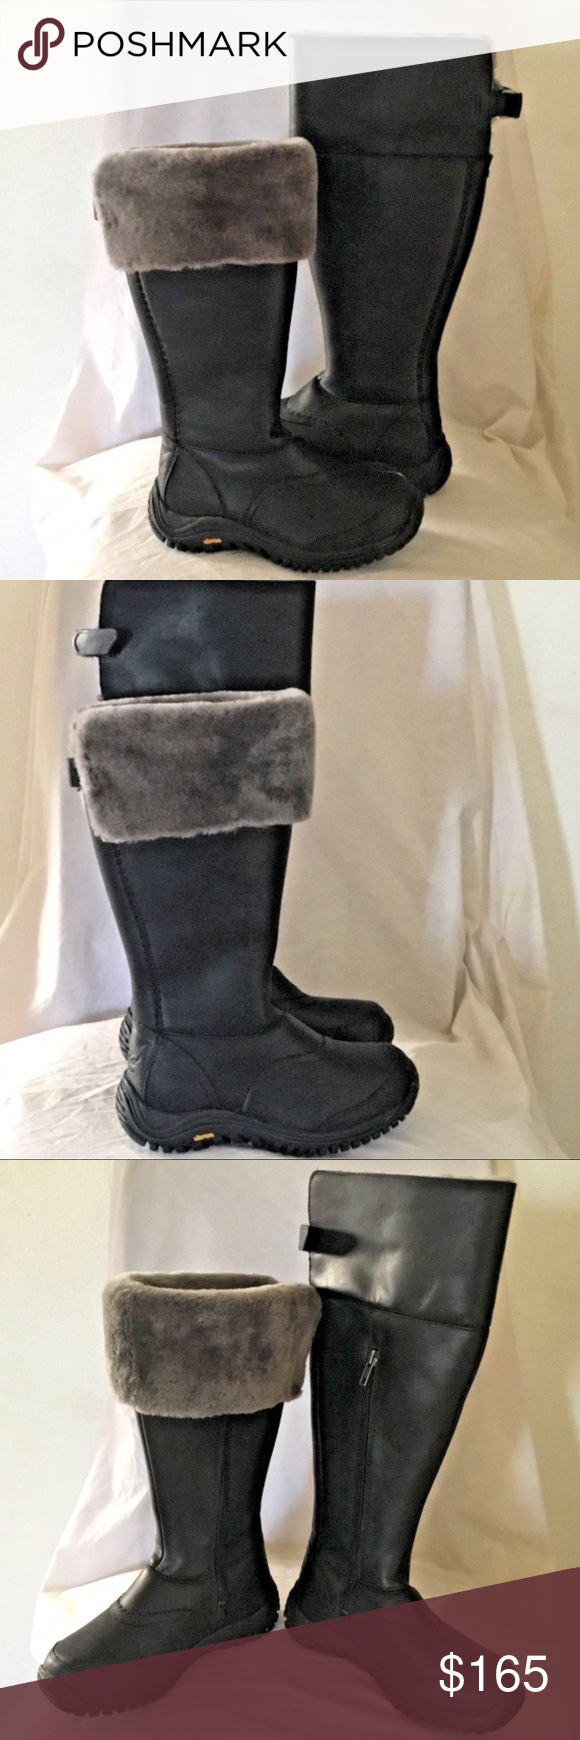 548ba3cc4f5 UGG Shoes   New Ugg Miko Black Leather Boots   Color: Black   Size ...